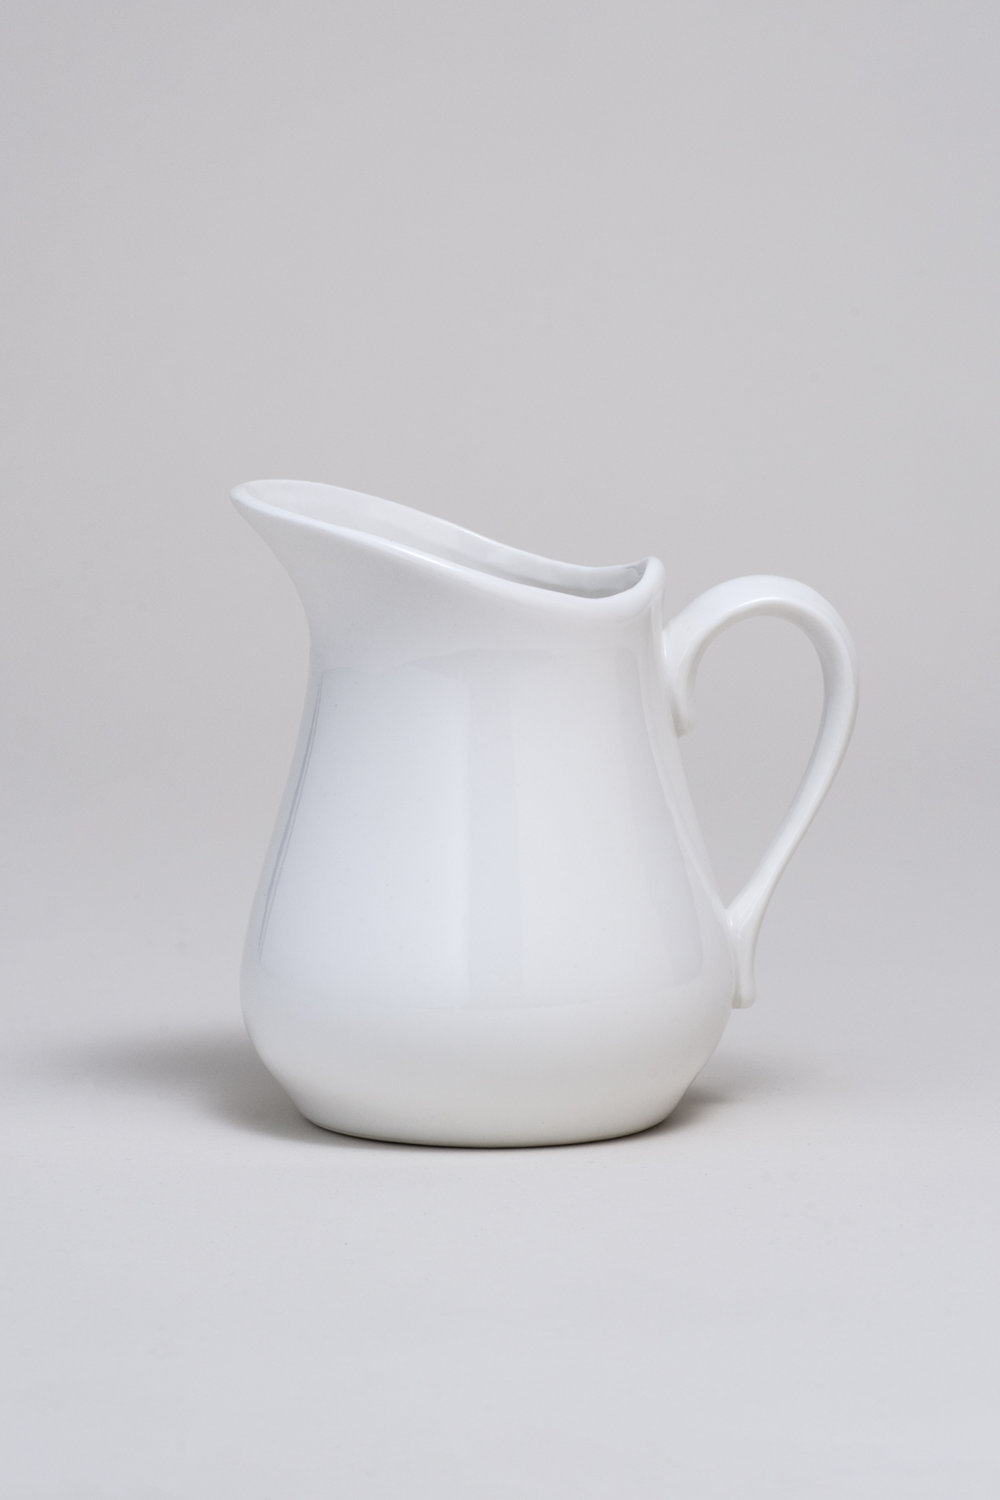 Porcelain Pitcher 12 oz. $2.00